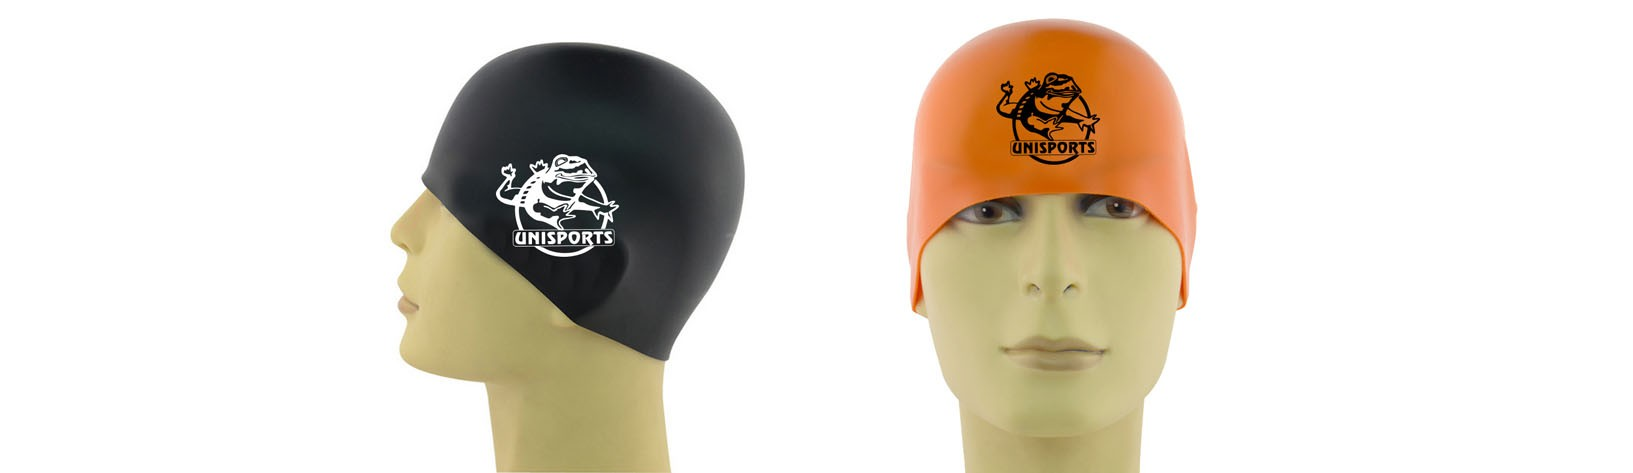 BONNET DE NATATION SILICONE 3D COMPETITION